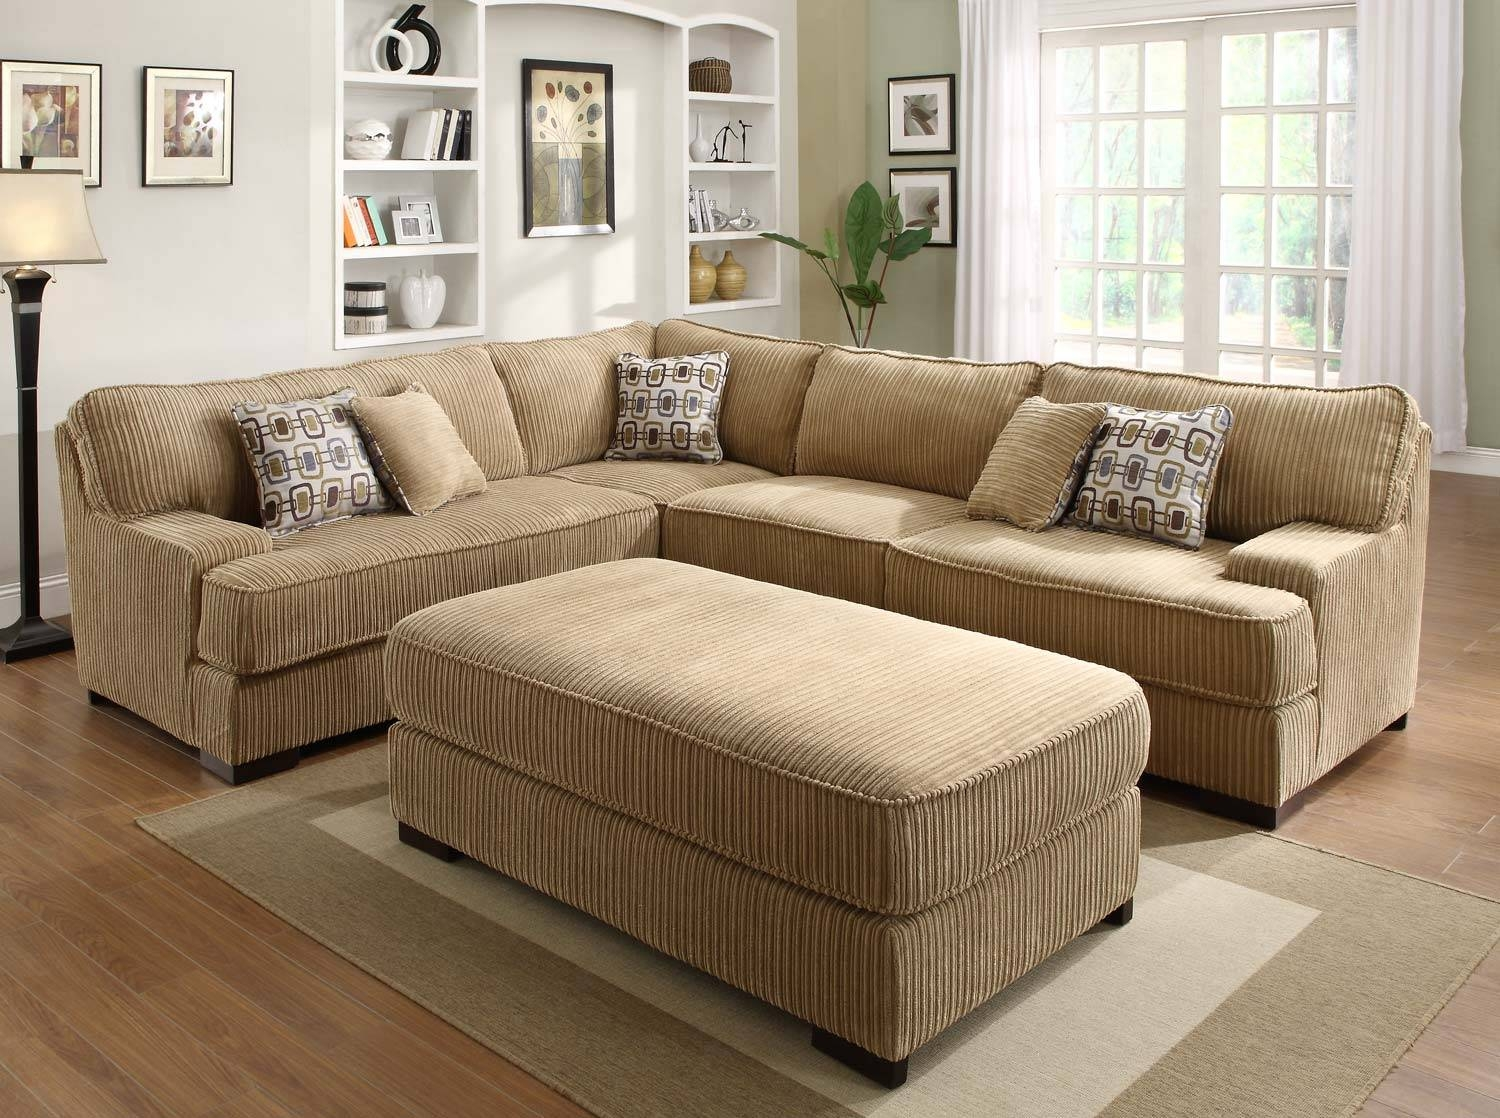 2018 Latest Camel Colored Sectional Sofa